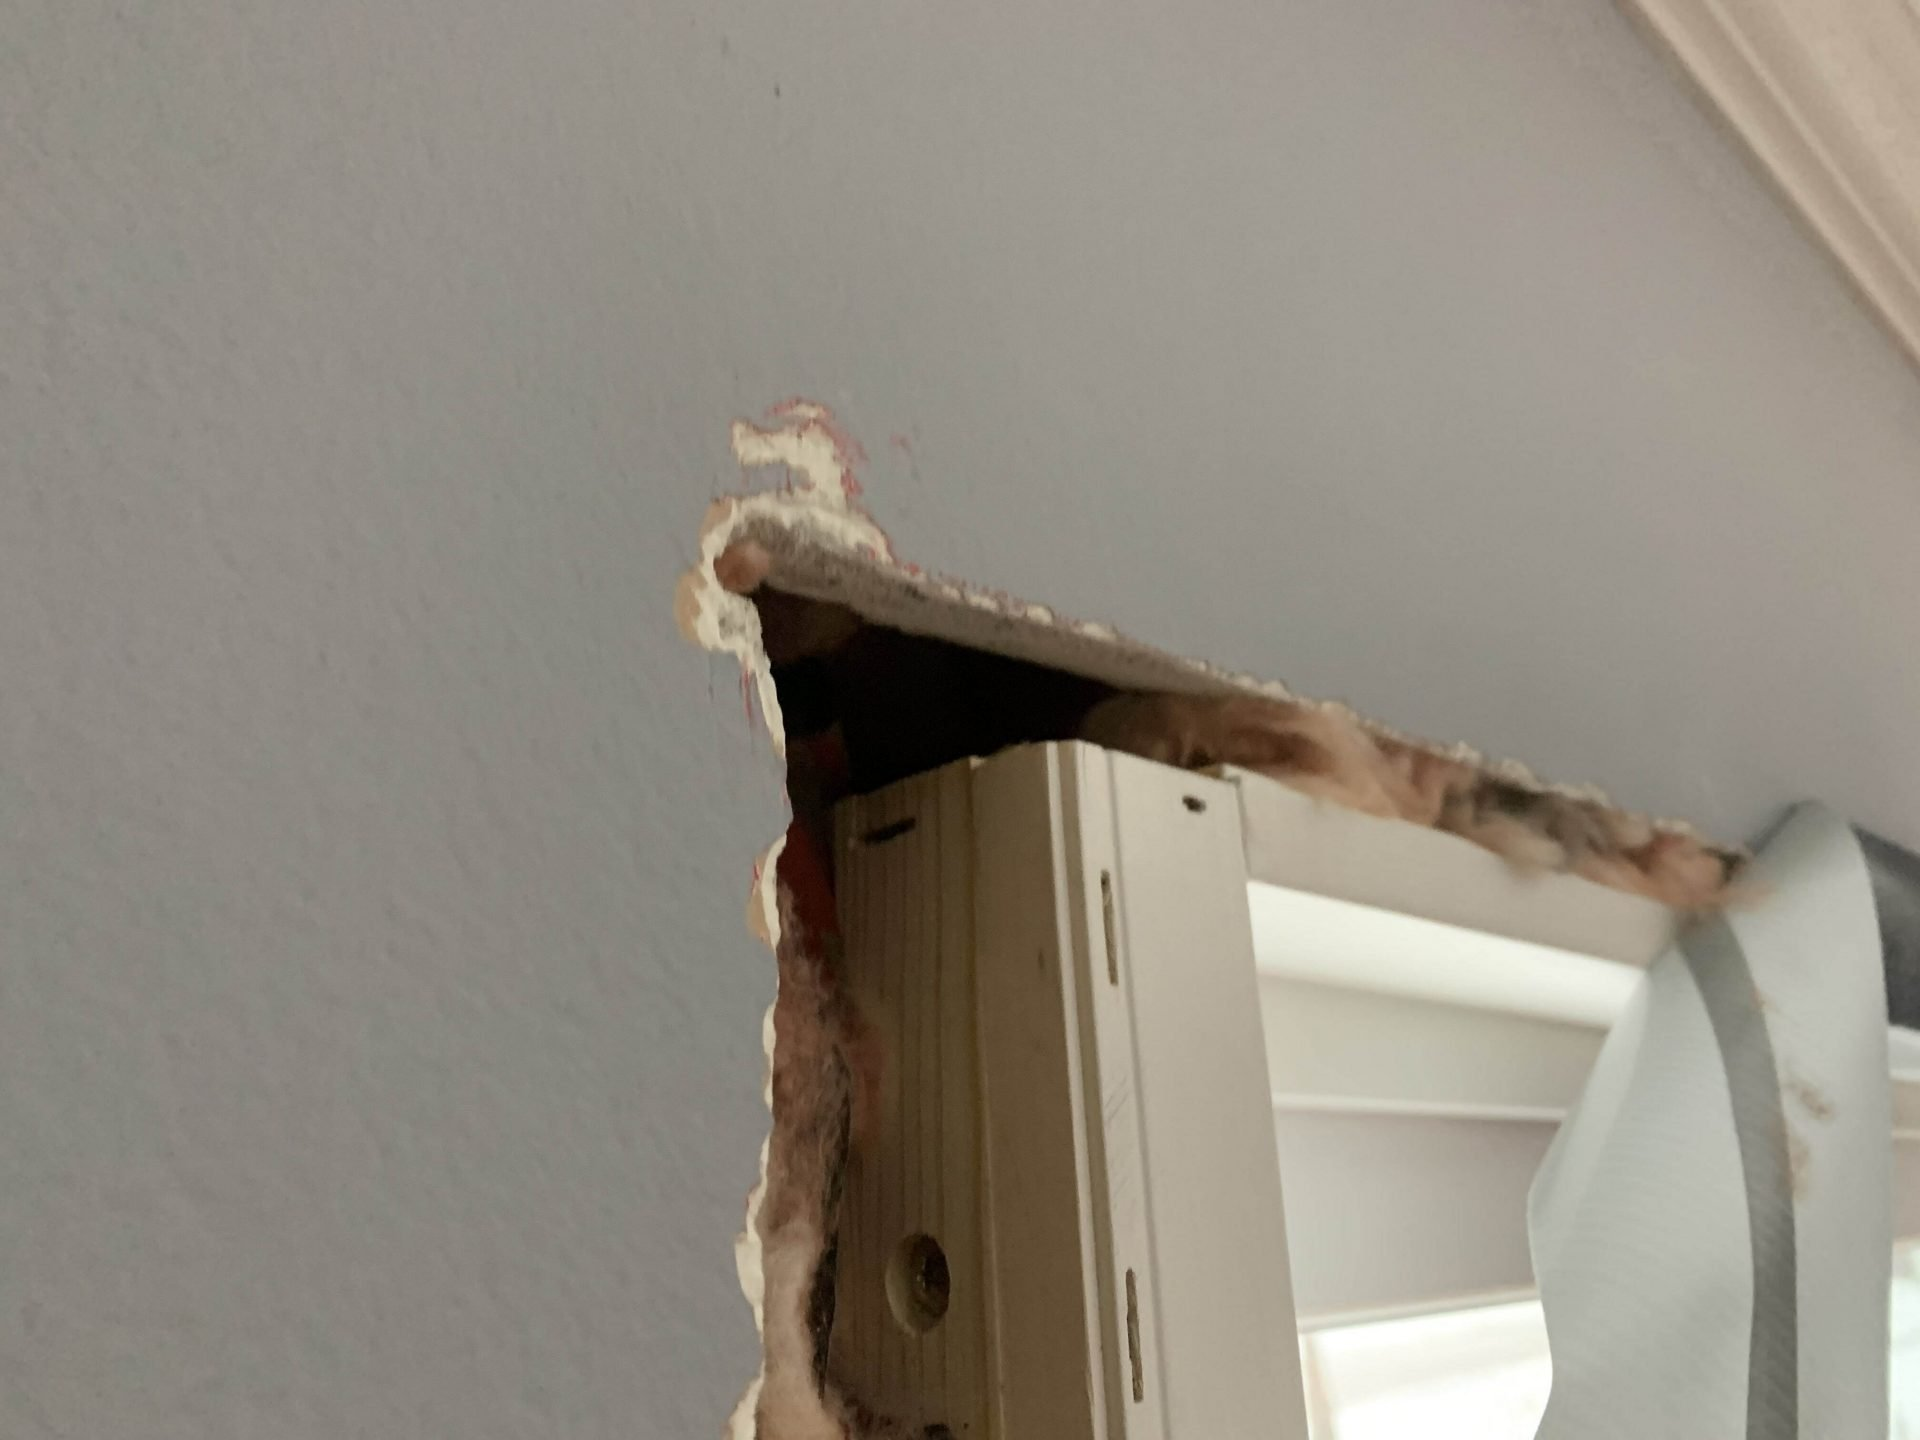 Missing Header Over Window | Chicagoland Home Inspectors Inc